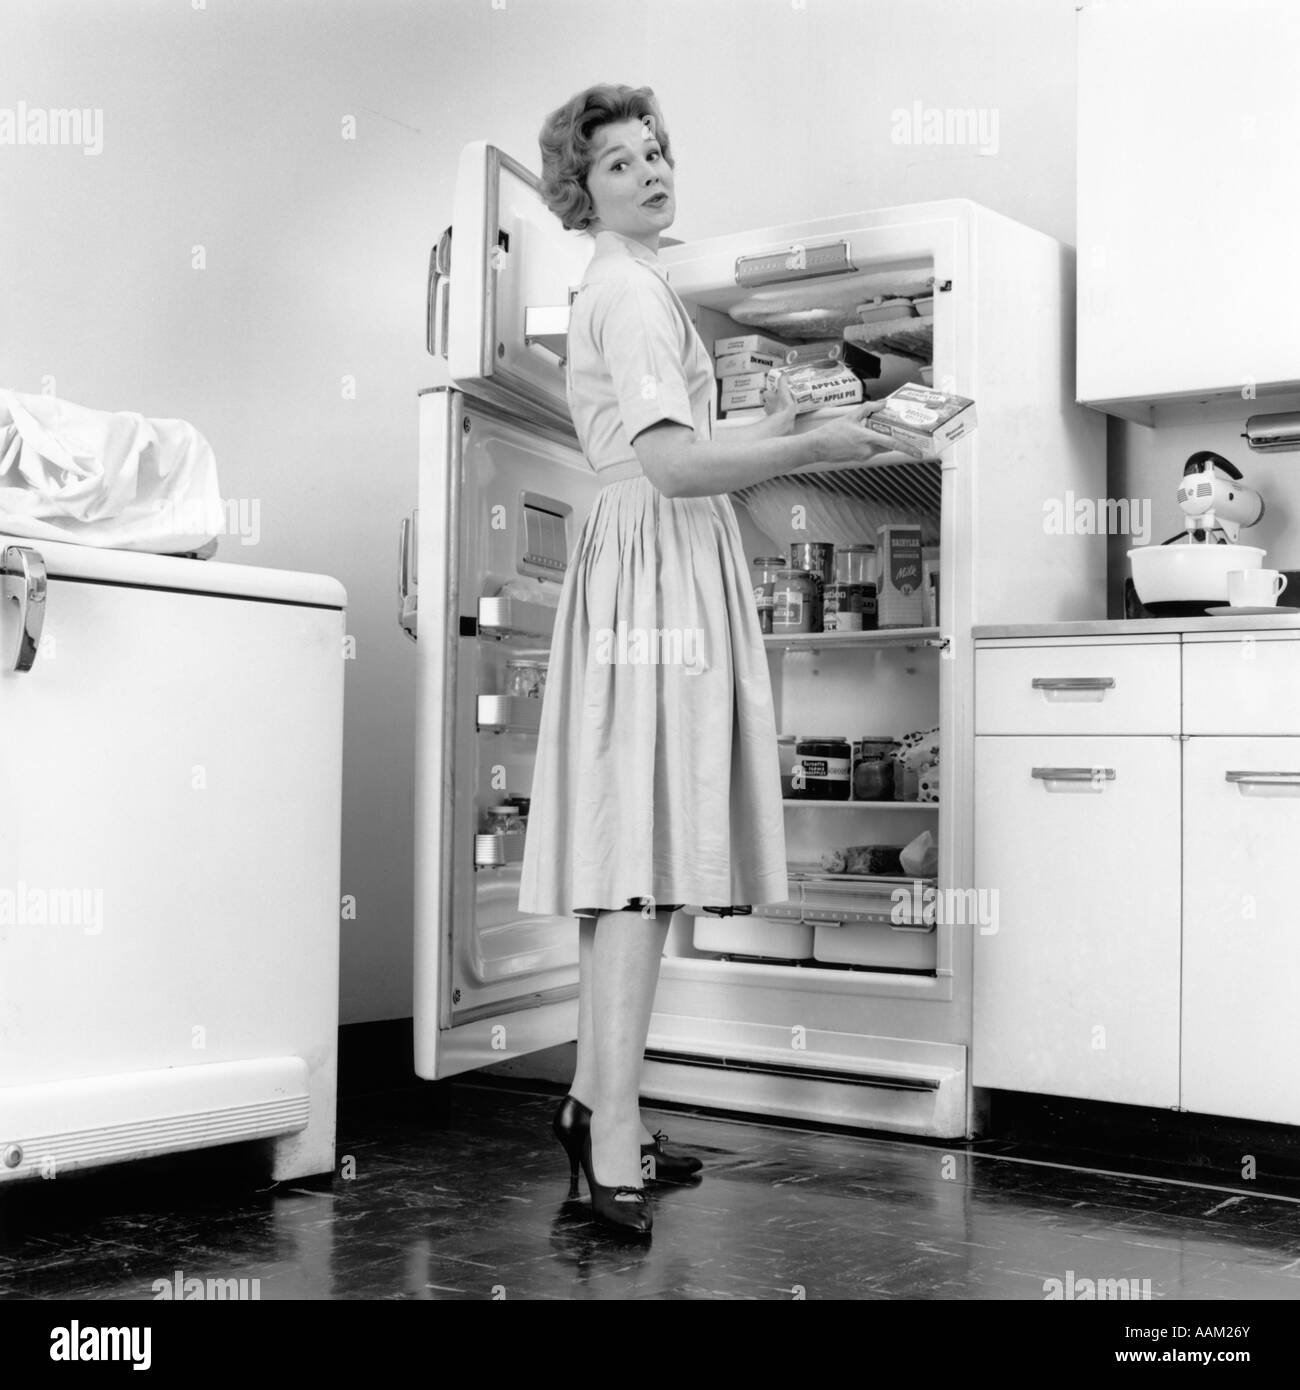 Vintage Kitchen Photography: 1950s WOMAN STANDING IN KITCHEN BY OPEN REFRIGERATOR Stock Photo: 12657650